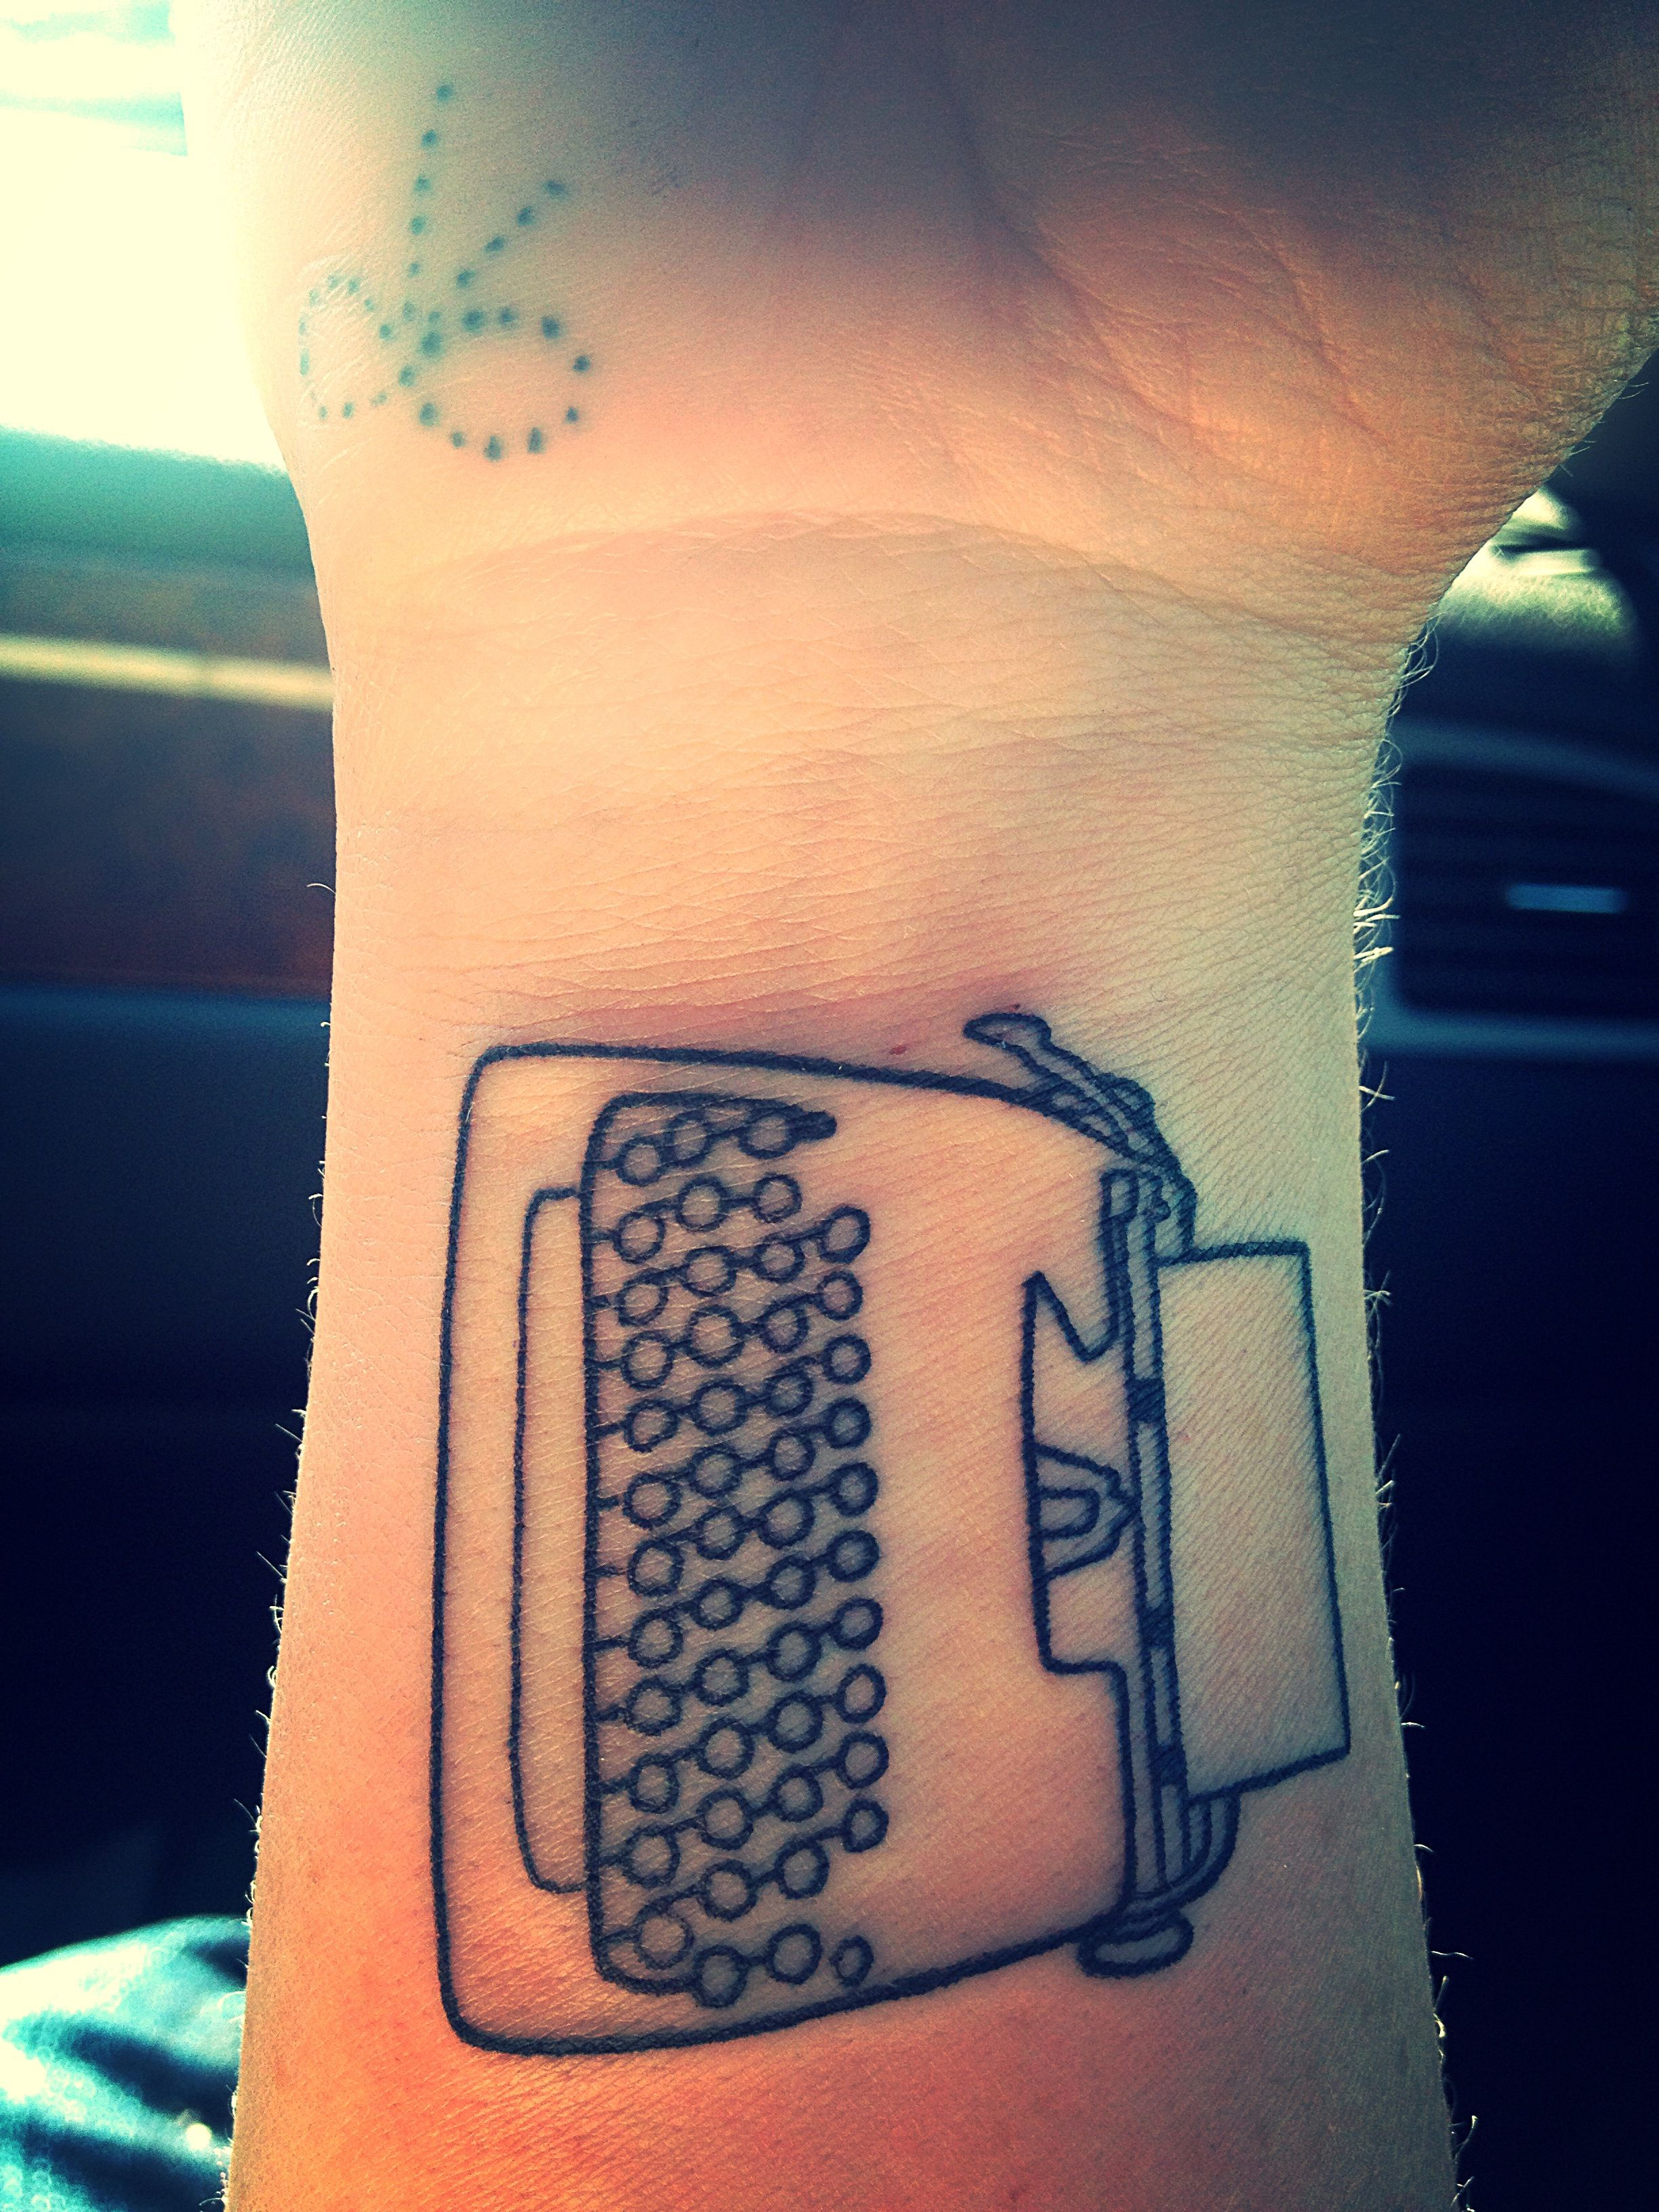 Vintage Typewriter Tattoo